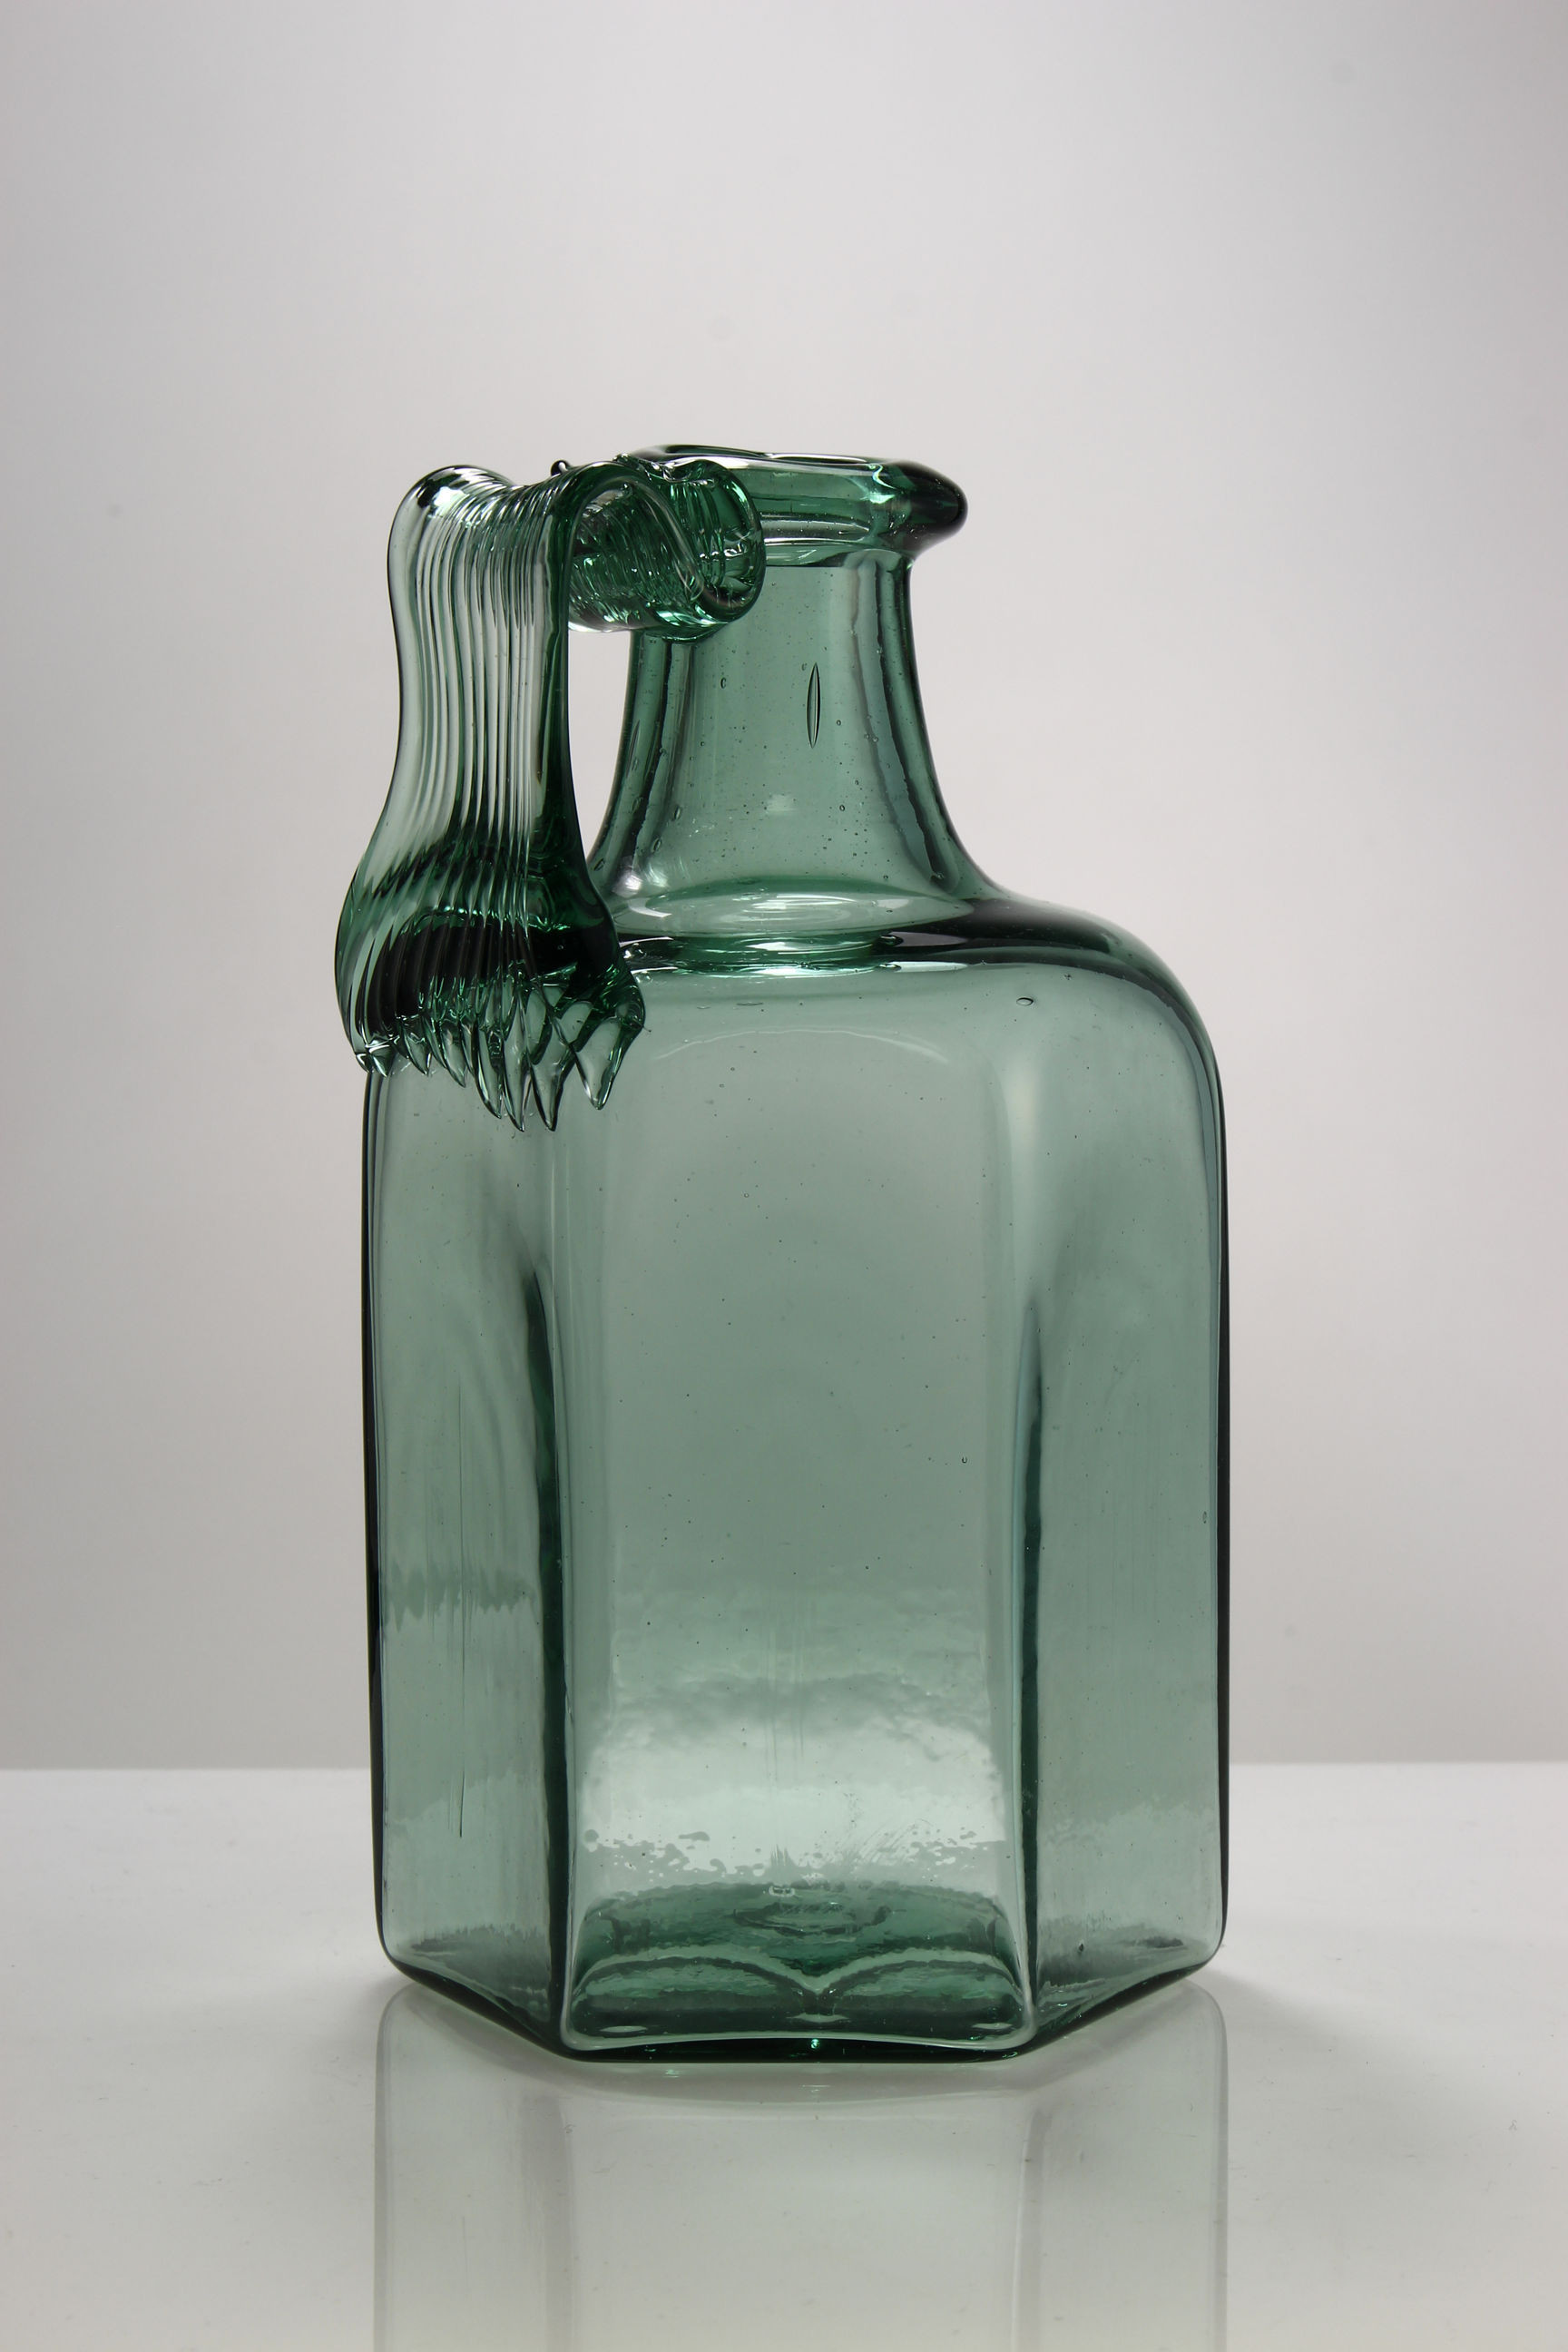 Large Green Glass Bottle Vase Of the Glassmakers Roman Mould Blown Vessel 065 In 065a0005 A30 Height 14 4cm